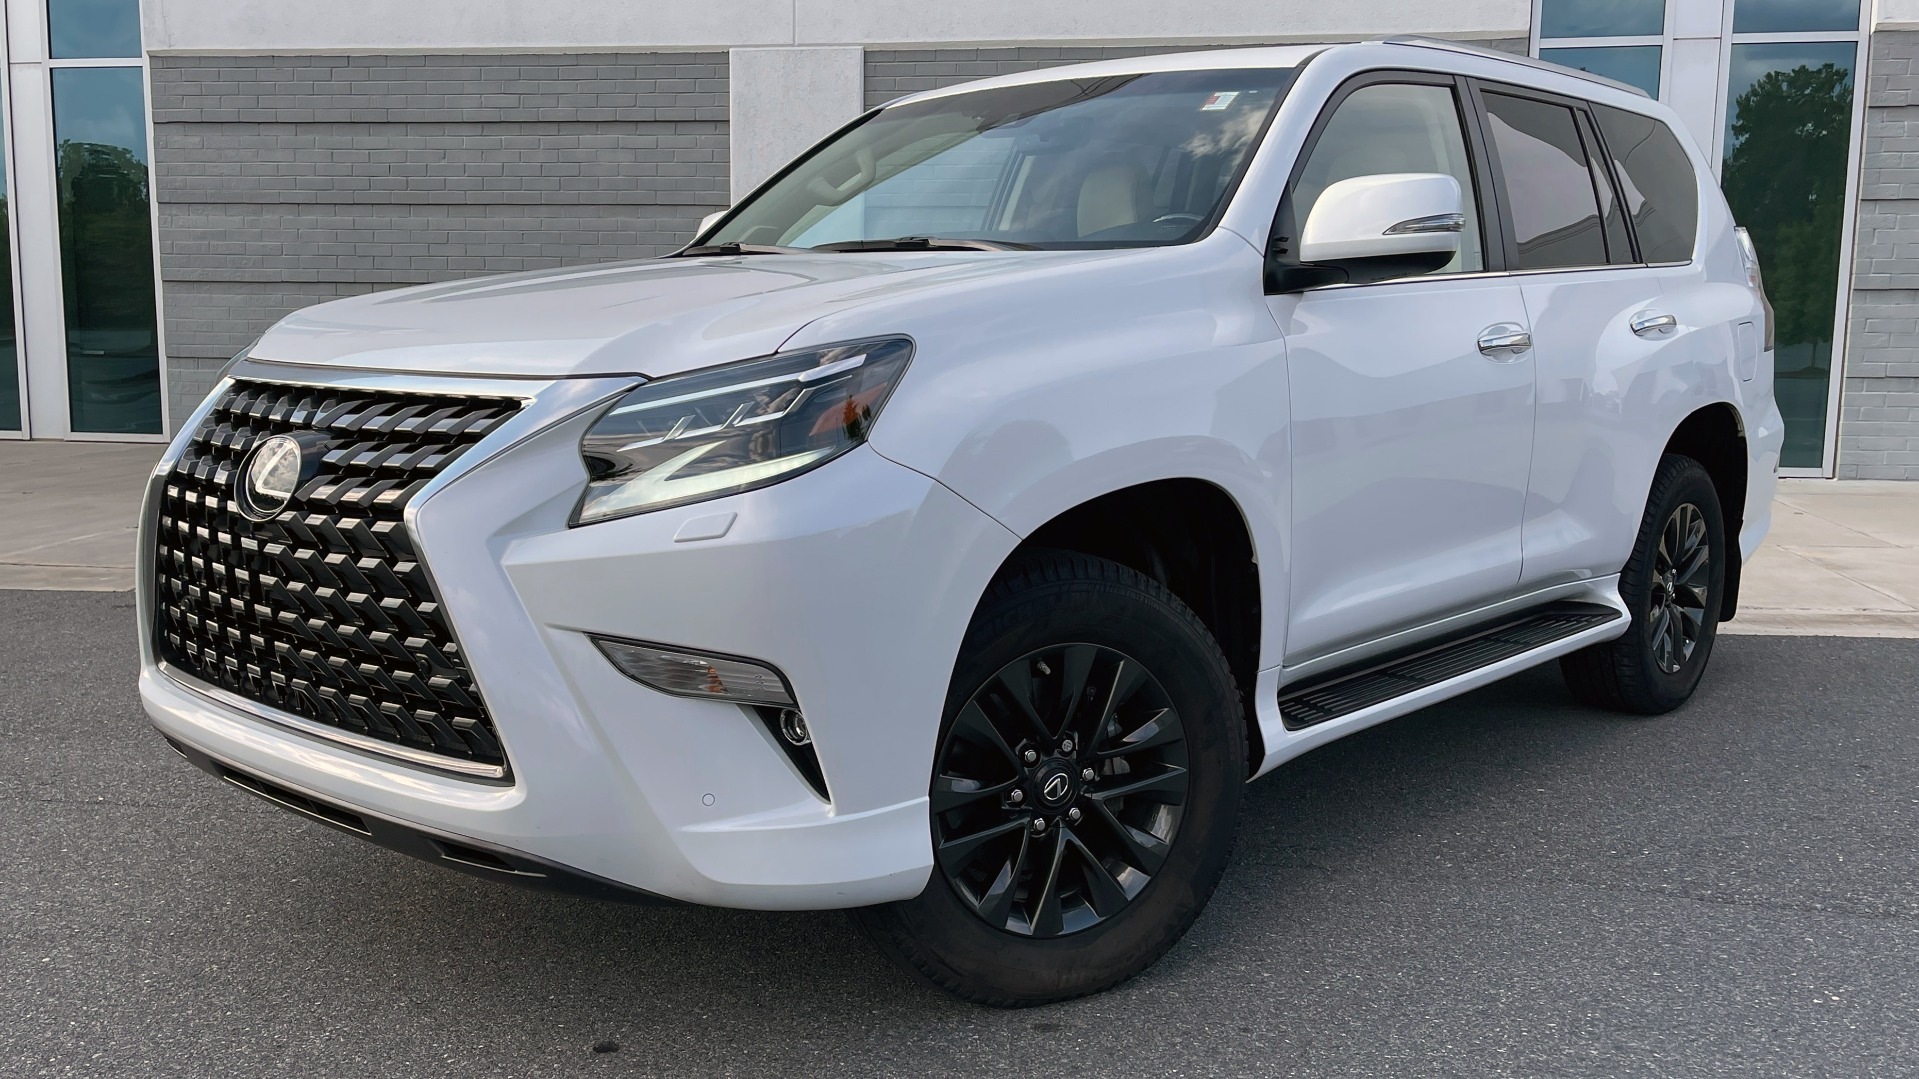 Used 2020 Lexus GX 460 PREMIUM / AWD / NAV / SUNROOF / 3-ROW / REARVIEW for sale $54,495 at Formula Imports in Charlotte NC 28227 1